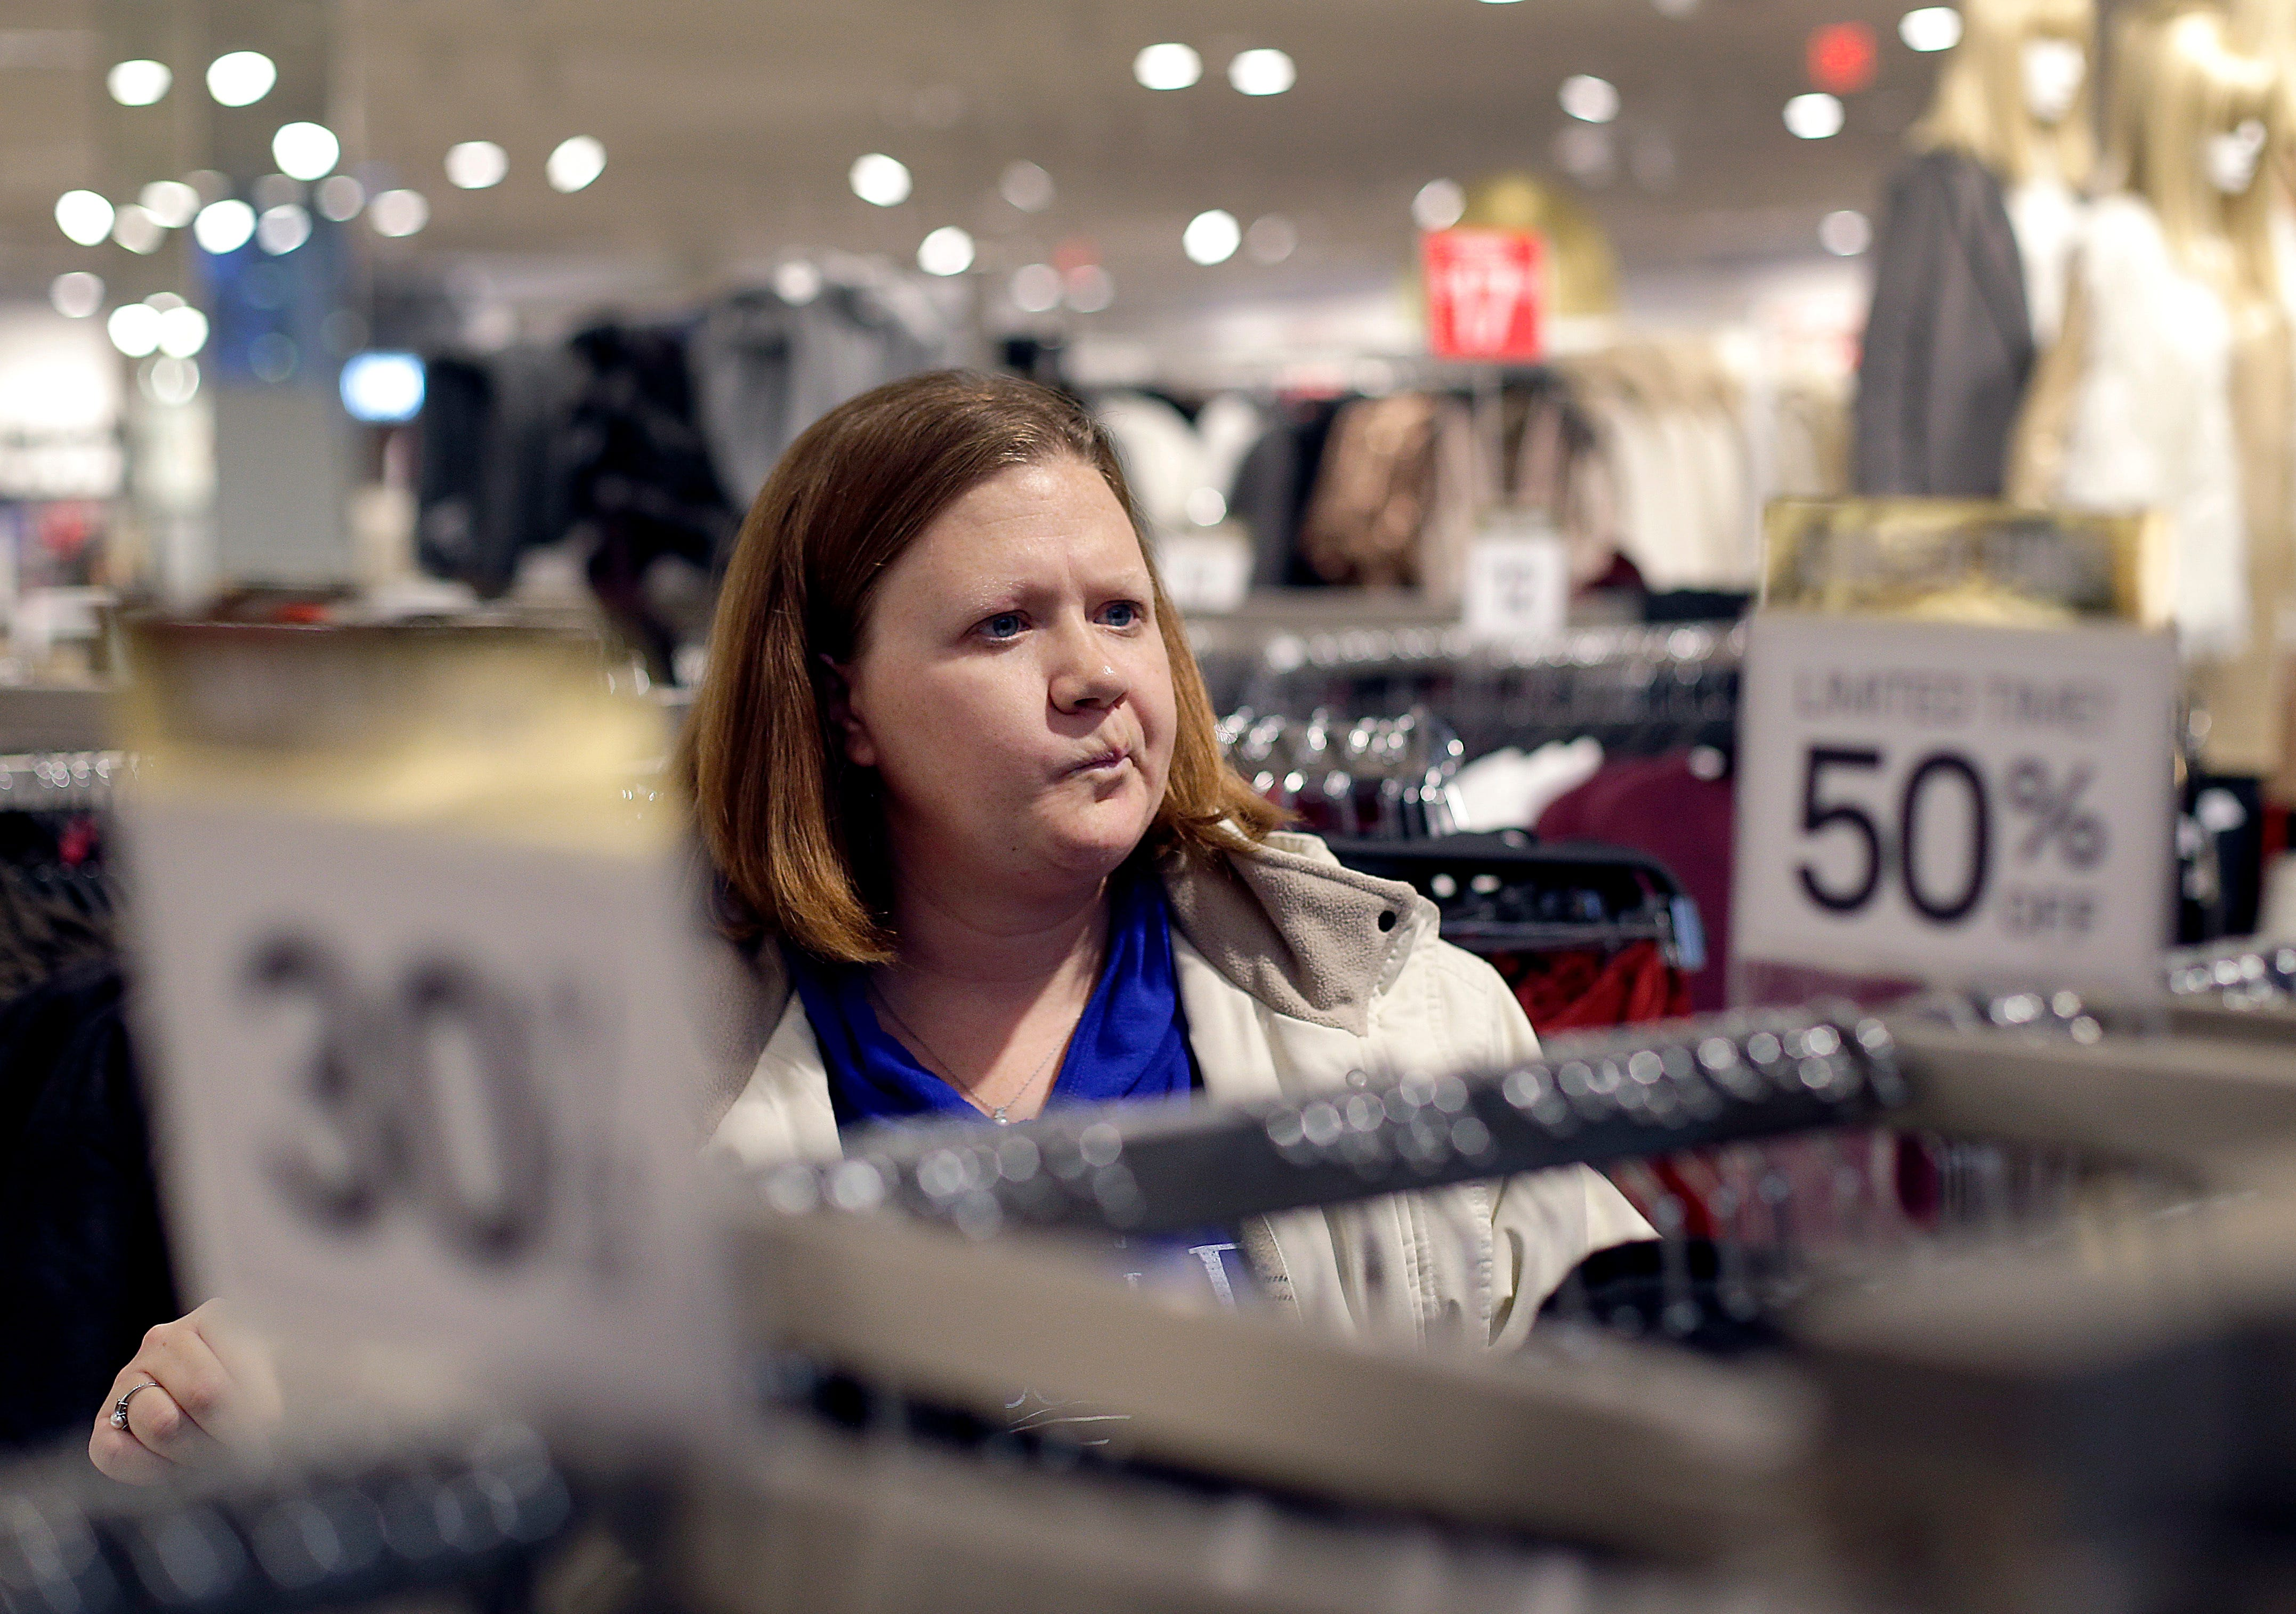 Forever 21 may close more than 100 stores in bankruptcy, report says